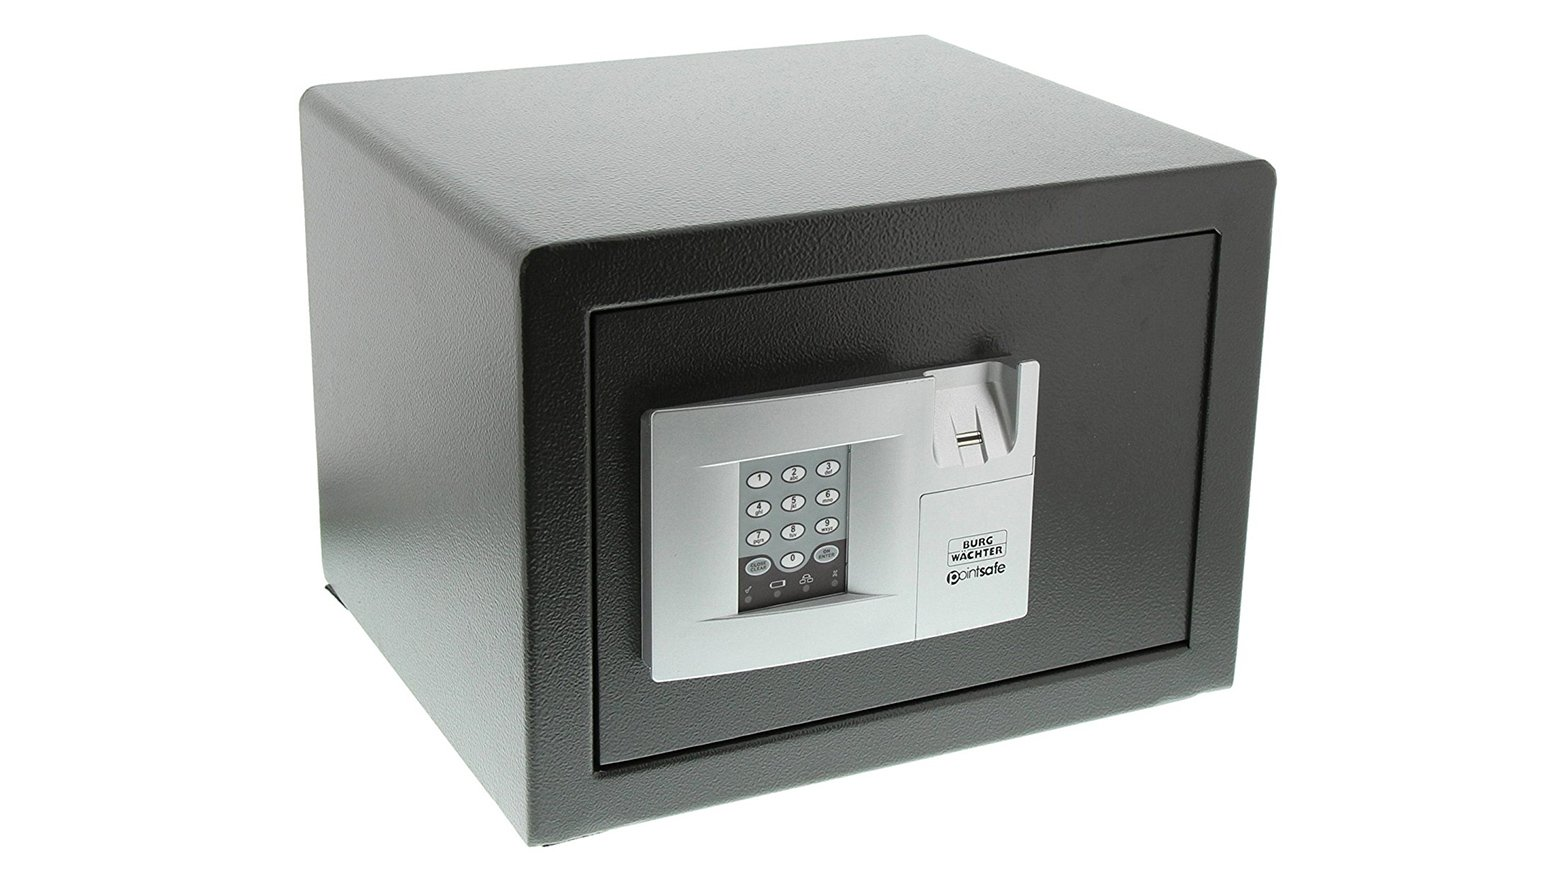 Best home safe 2019: Keep your valuables safe and secure